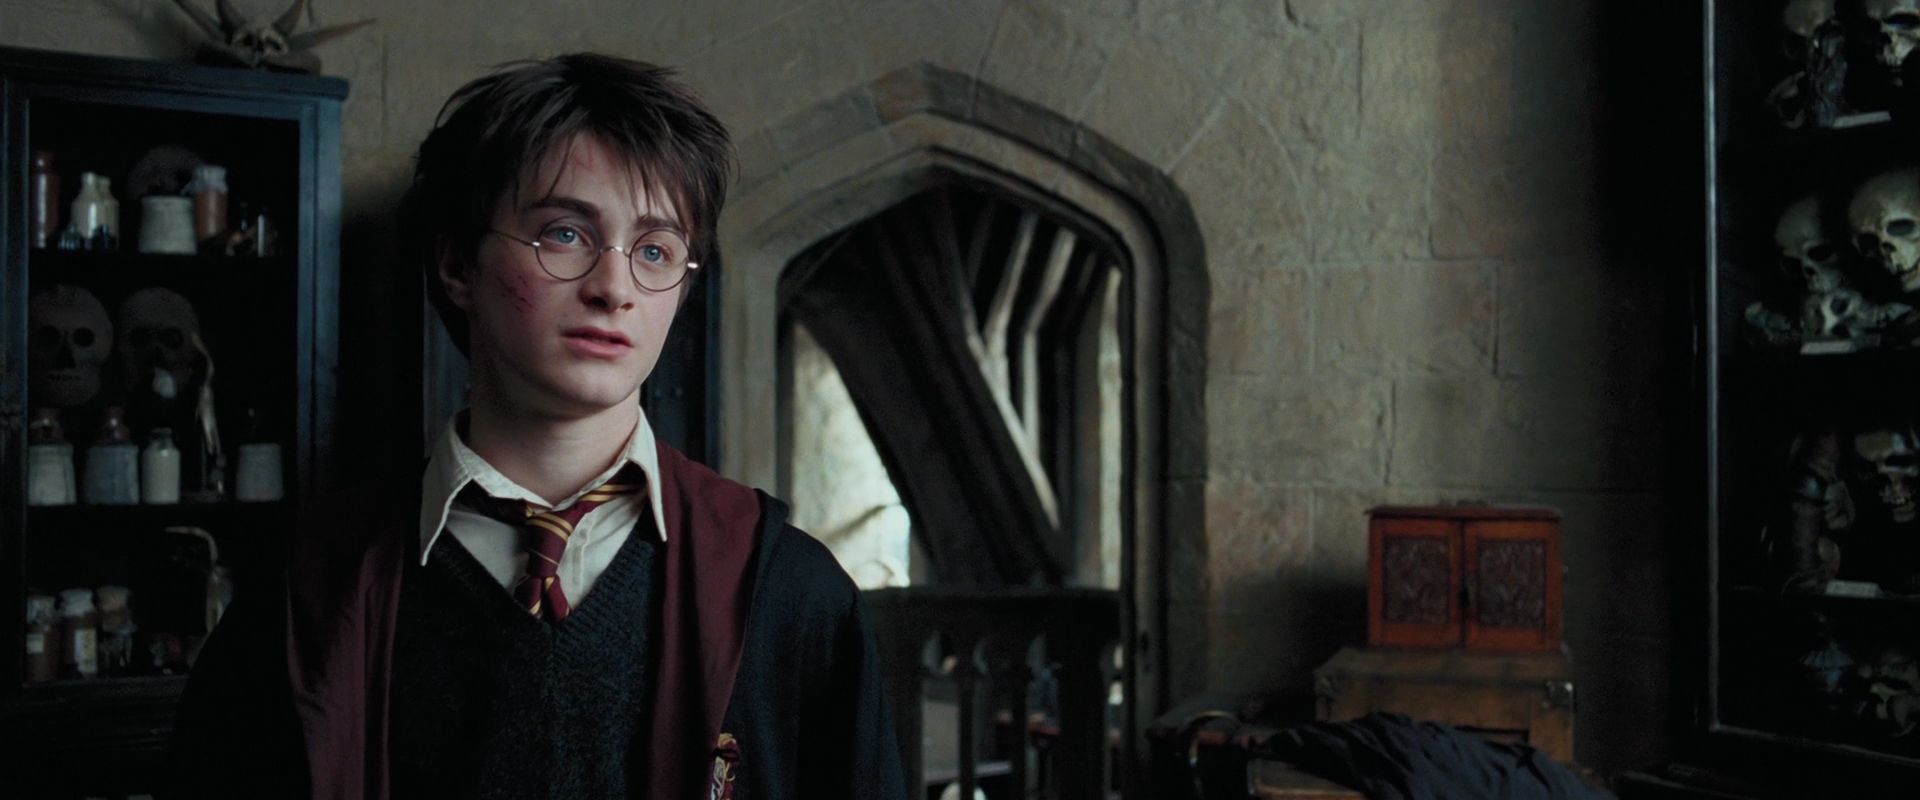 a literary analysis of harry potter and the prisoner of azkaban Chapter 4 of harry potter and the prisoner of azkaban: at the leaky cauldron they meet the student of literature will note that the author uses this form.